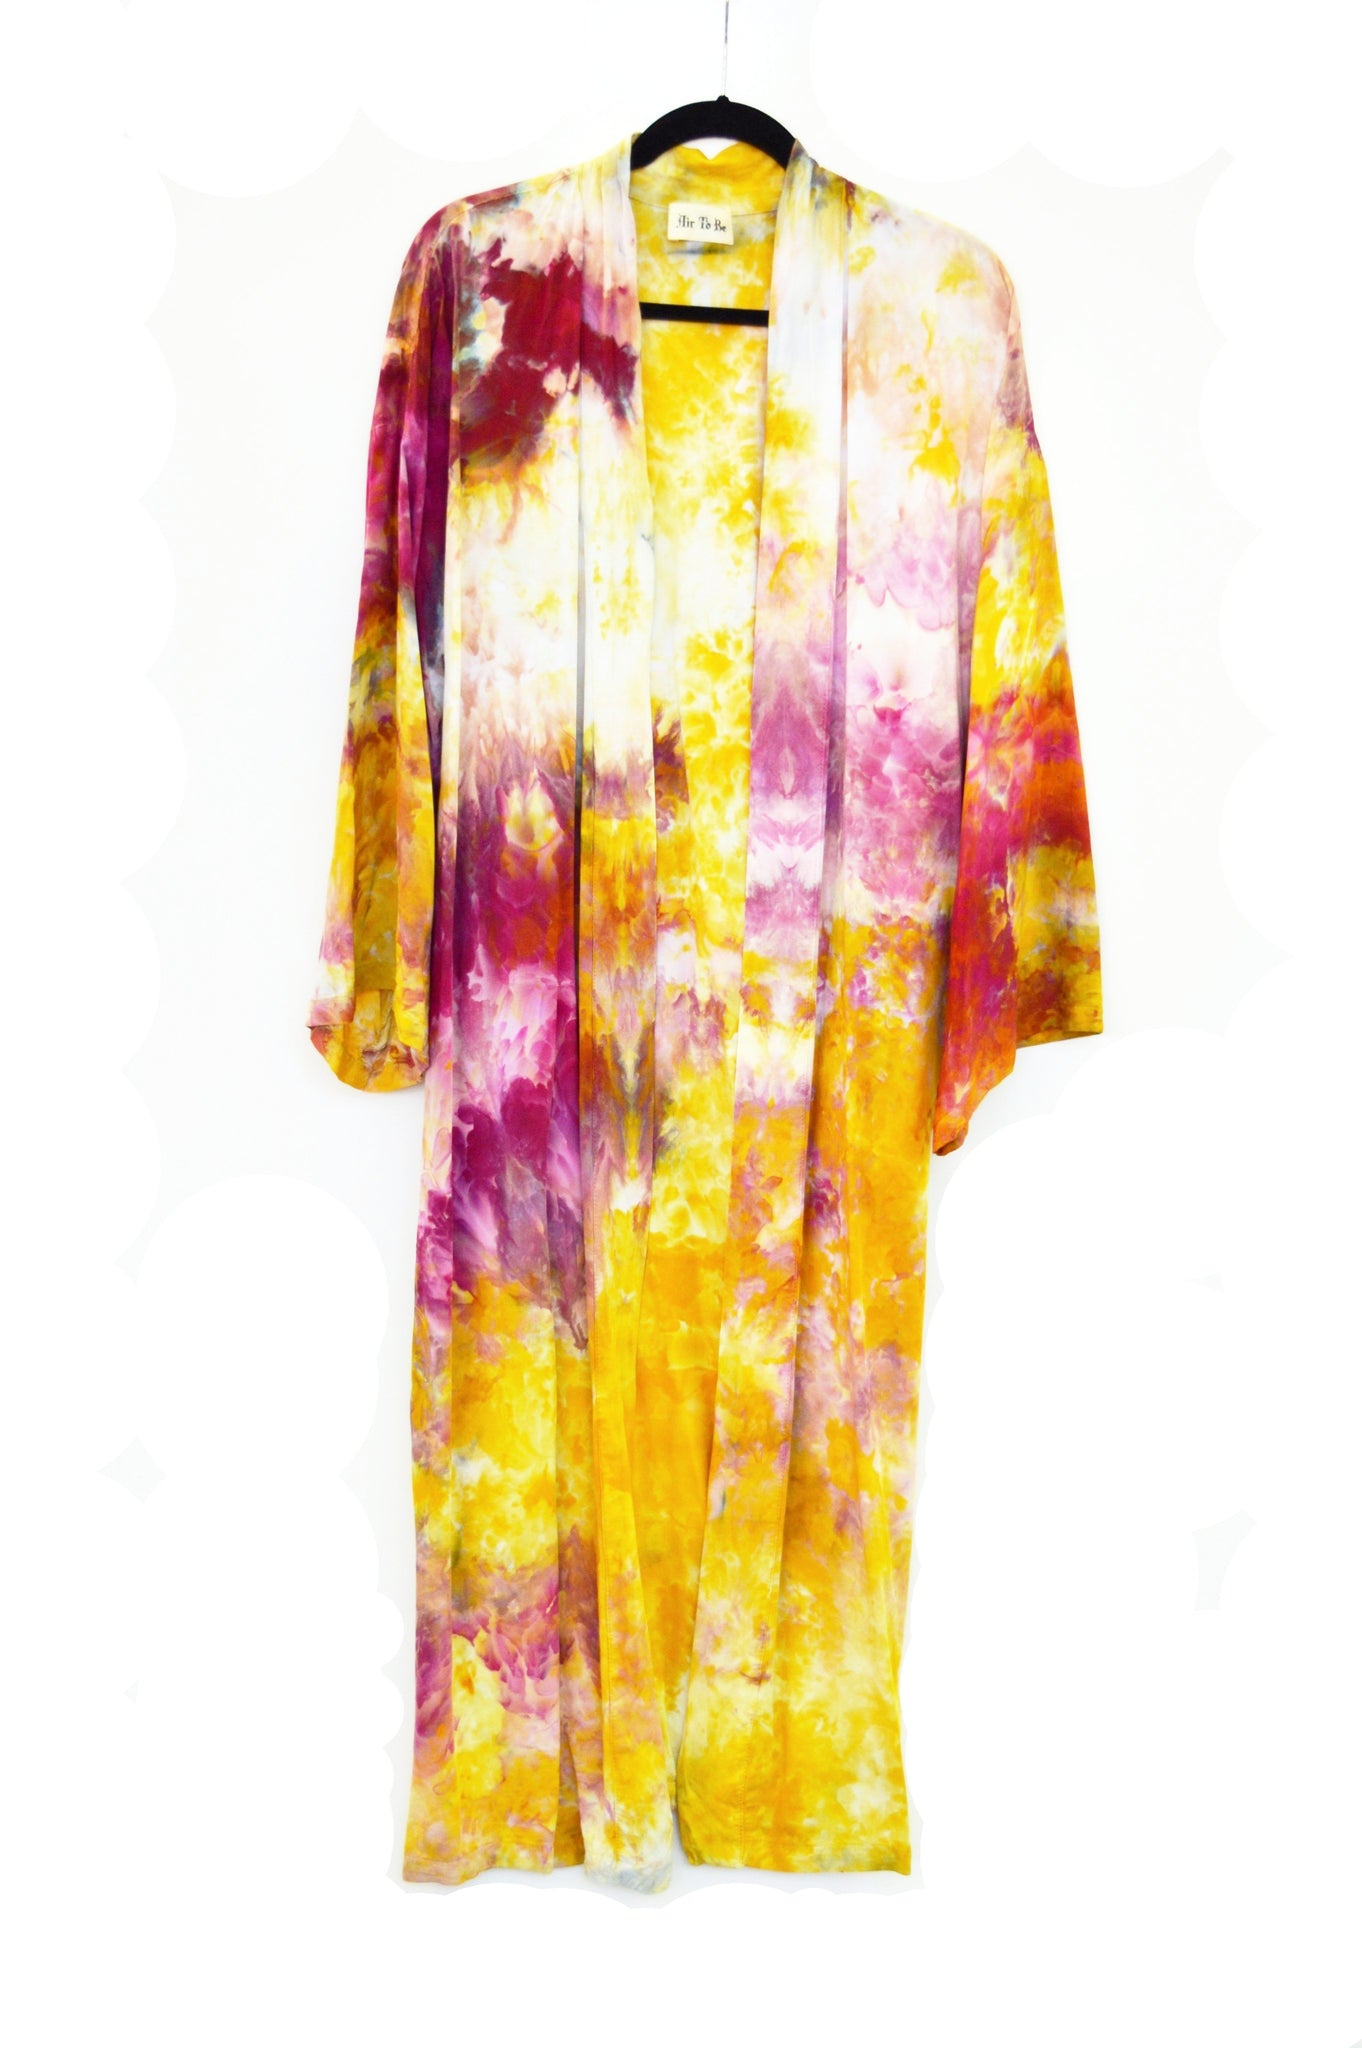 [air_to_be],[asheville_nc],[Handmade_bohemian_chic],[jewelry_and_apparel], [kimono_robe],[unique_festival_clothing],[black_basic],[tie_dye], [ice_dye],[Custom_kimono],[chic_apparel],[handmade_kimono],[cotton_kimono],[bridesmaid_gifts],[wholesale_kimono],[unique_kimono],[hand_dyed_kimono],[hand_dyed_robe],[cotton_robe],[unique_gift],[bohemian],[bohemian_gift],[boho_fashion]